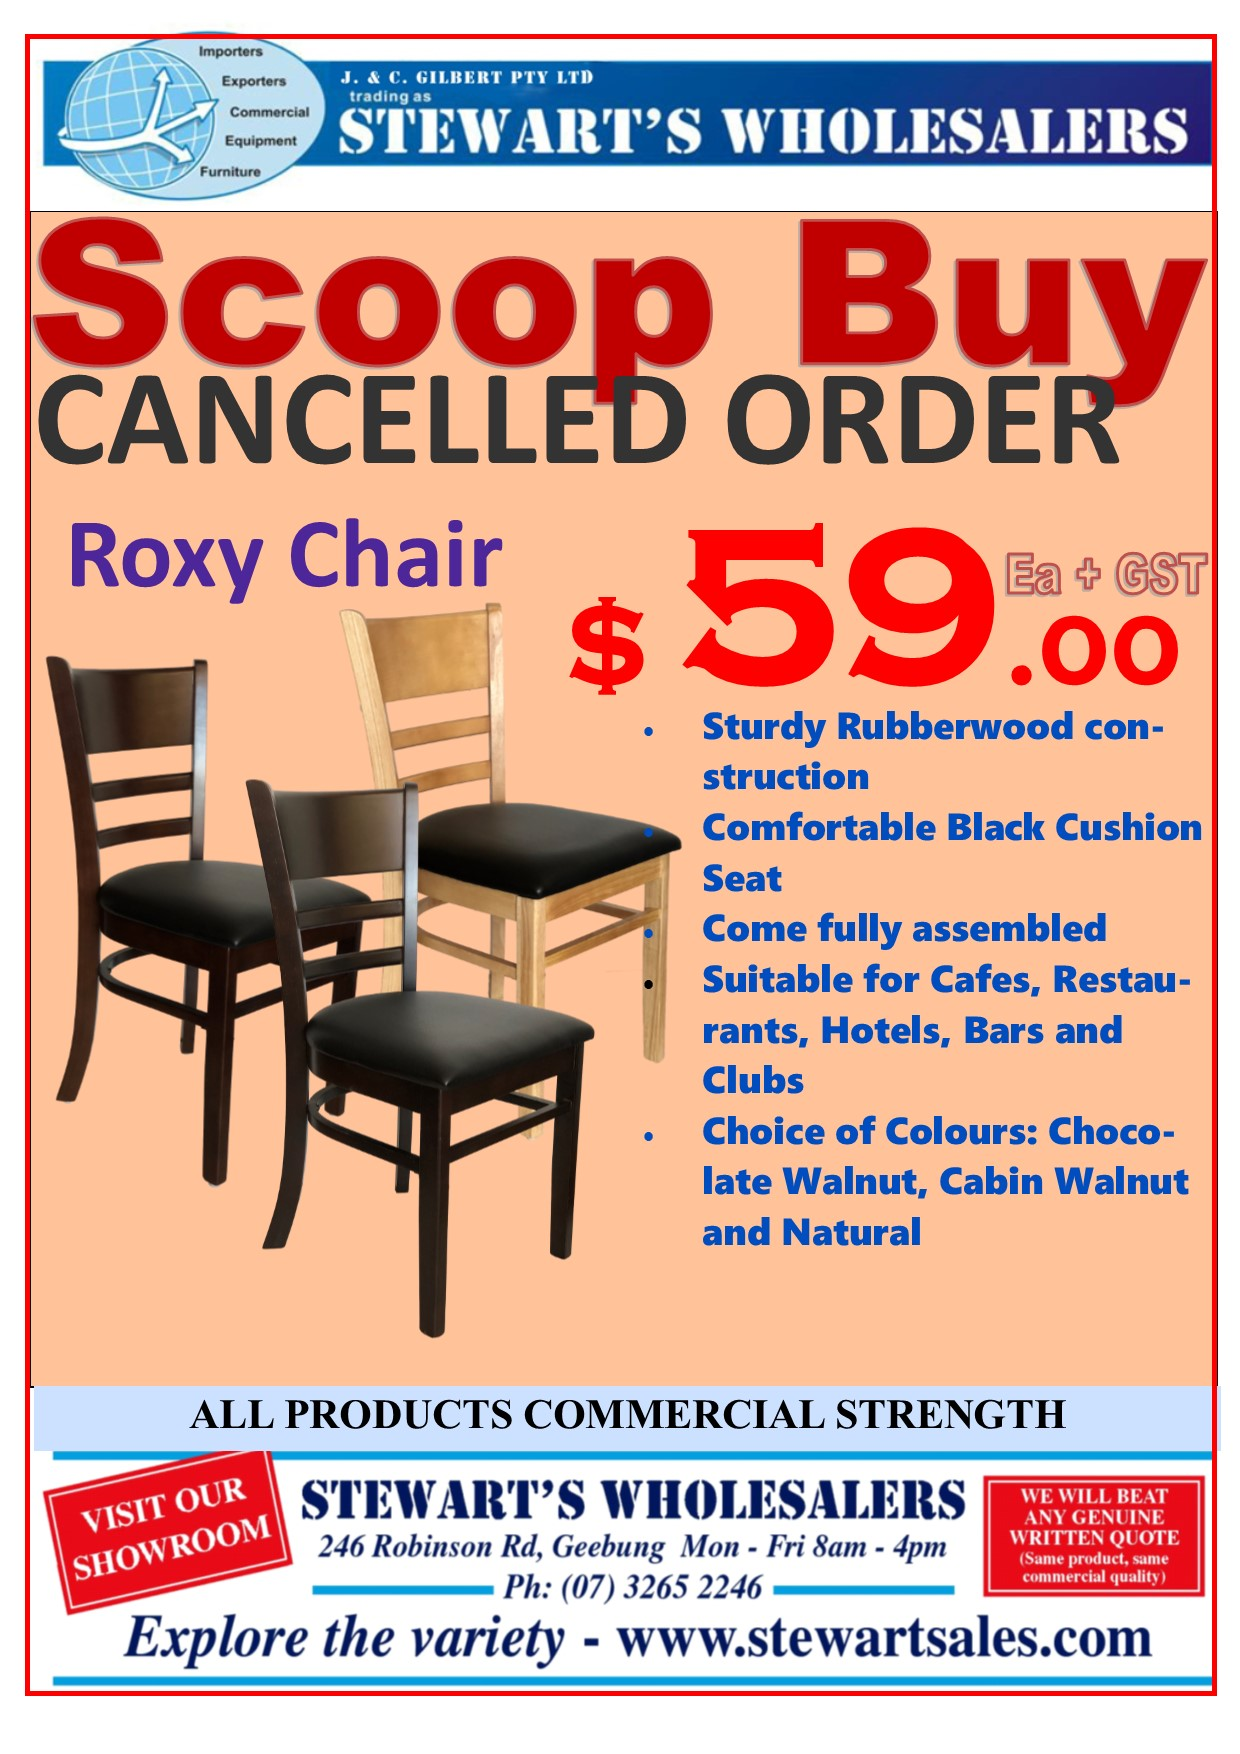 Roxy Chair Cancelled Order